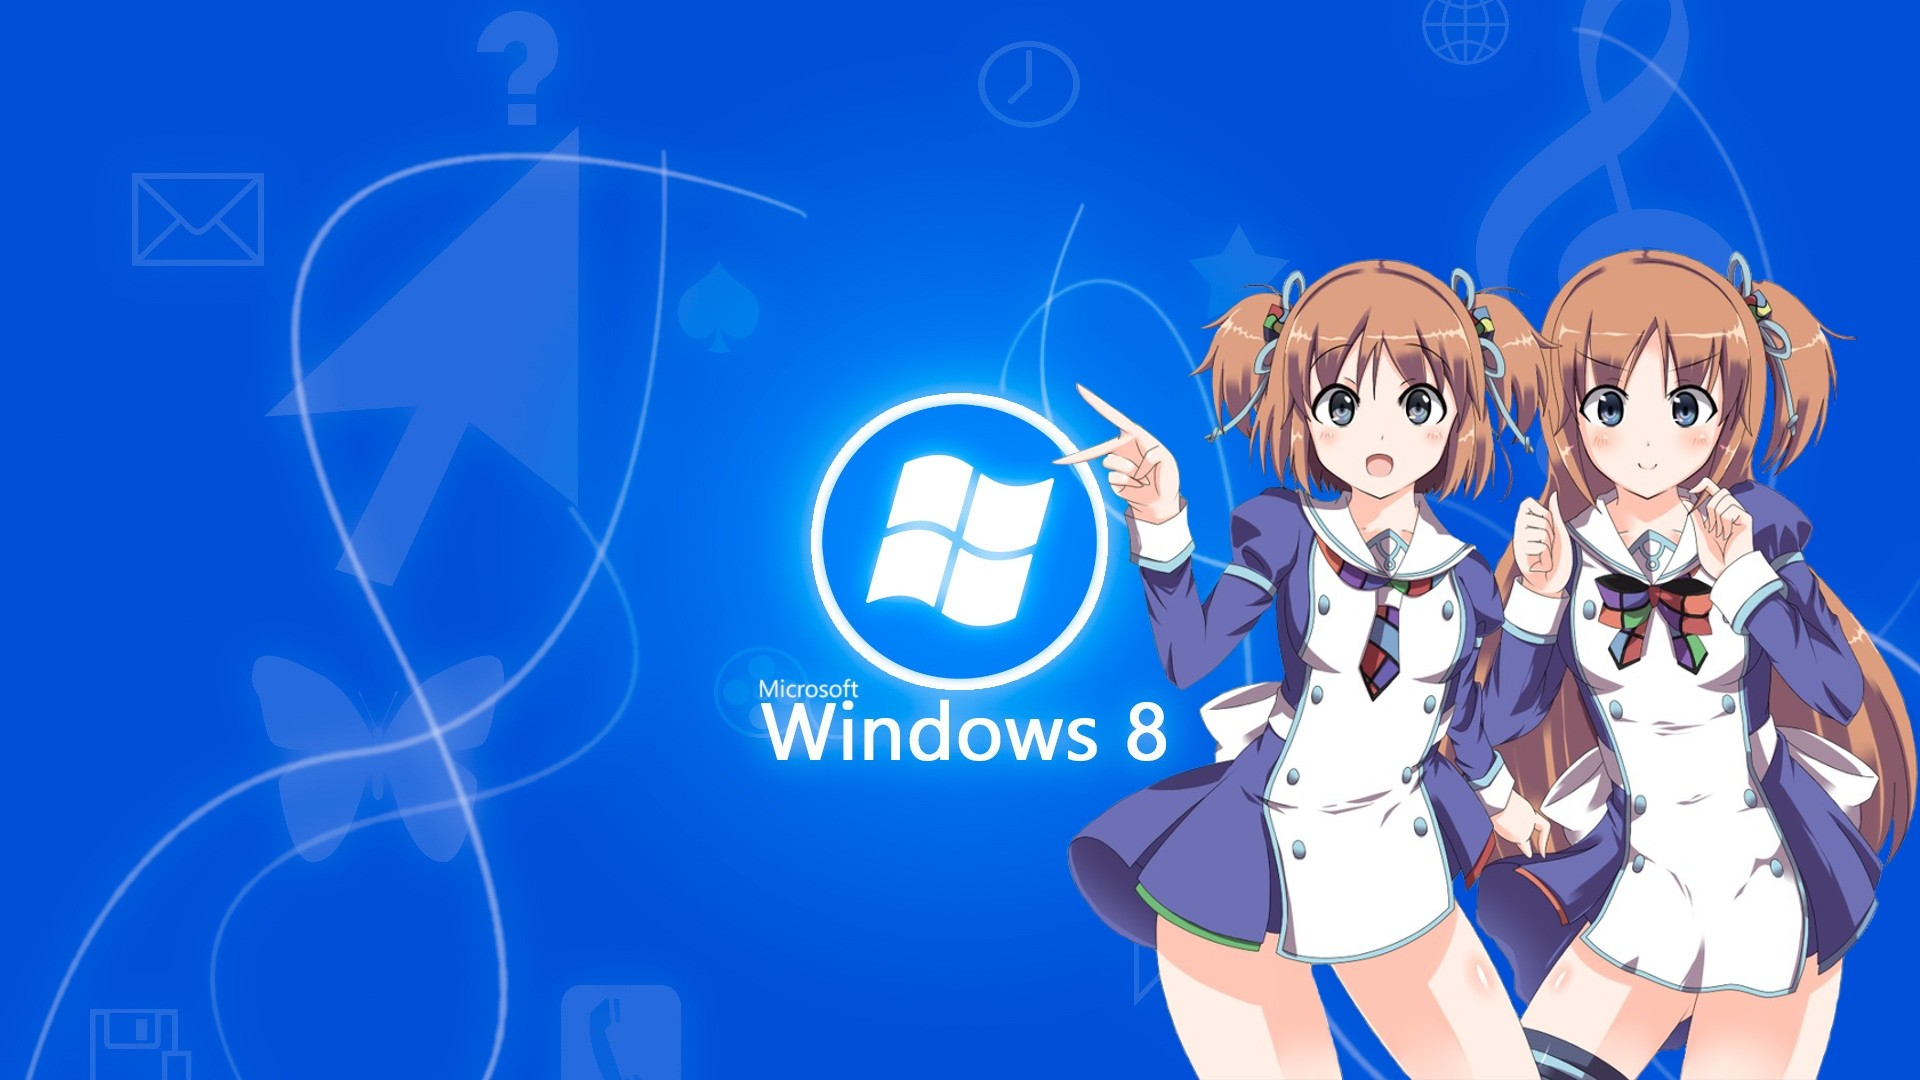 Res: 1920x1080, Anime Hd Wallpapers For Windows 8 Madobe Yuu Ai Windows 8 Sauzke On  Deviantart